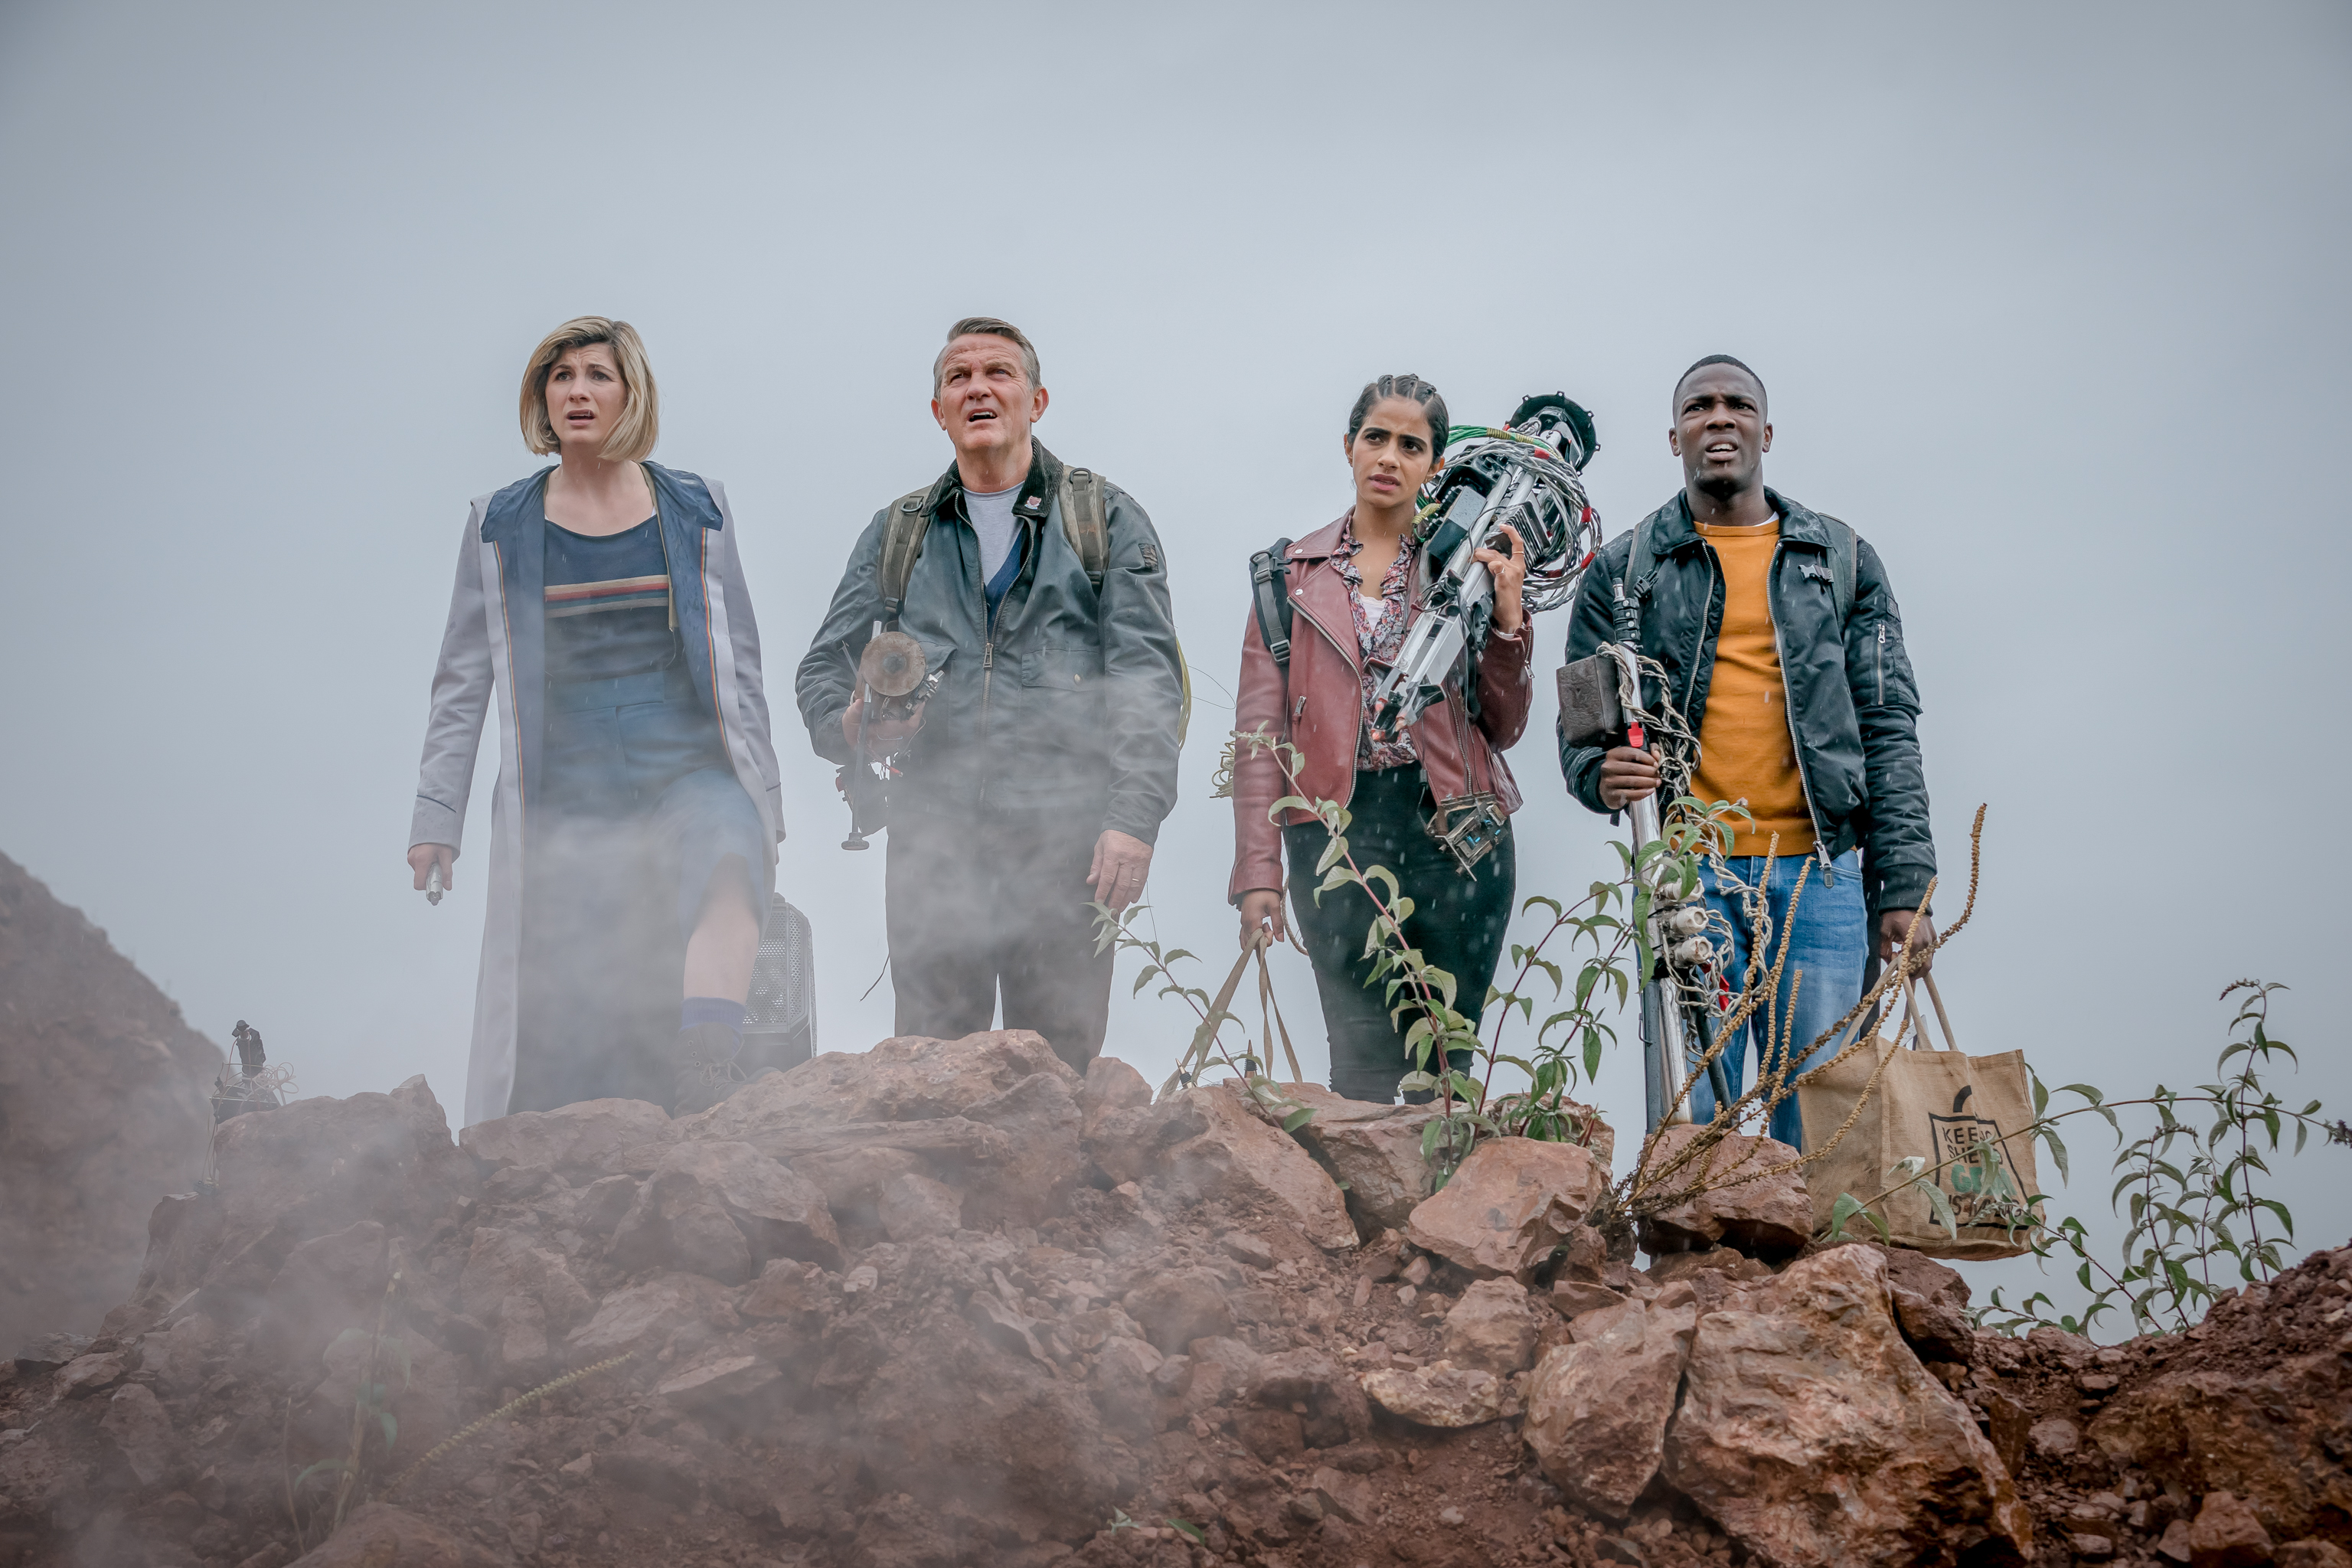 Doctor Who comes to the rescue in exciting sneak peek of season 12 finale